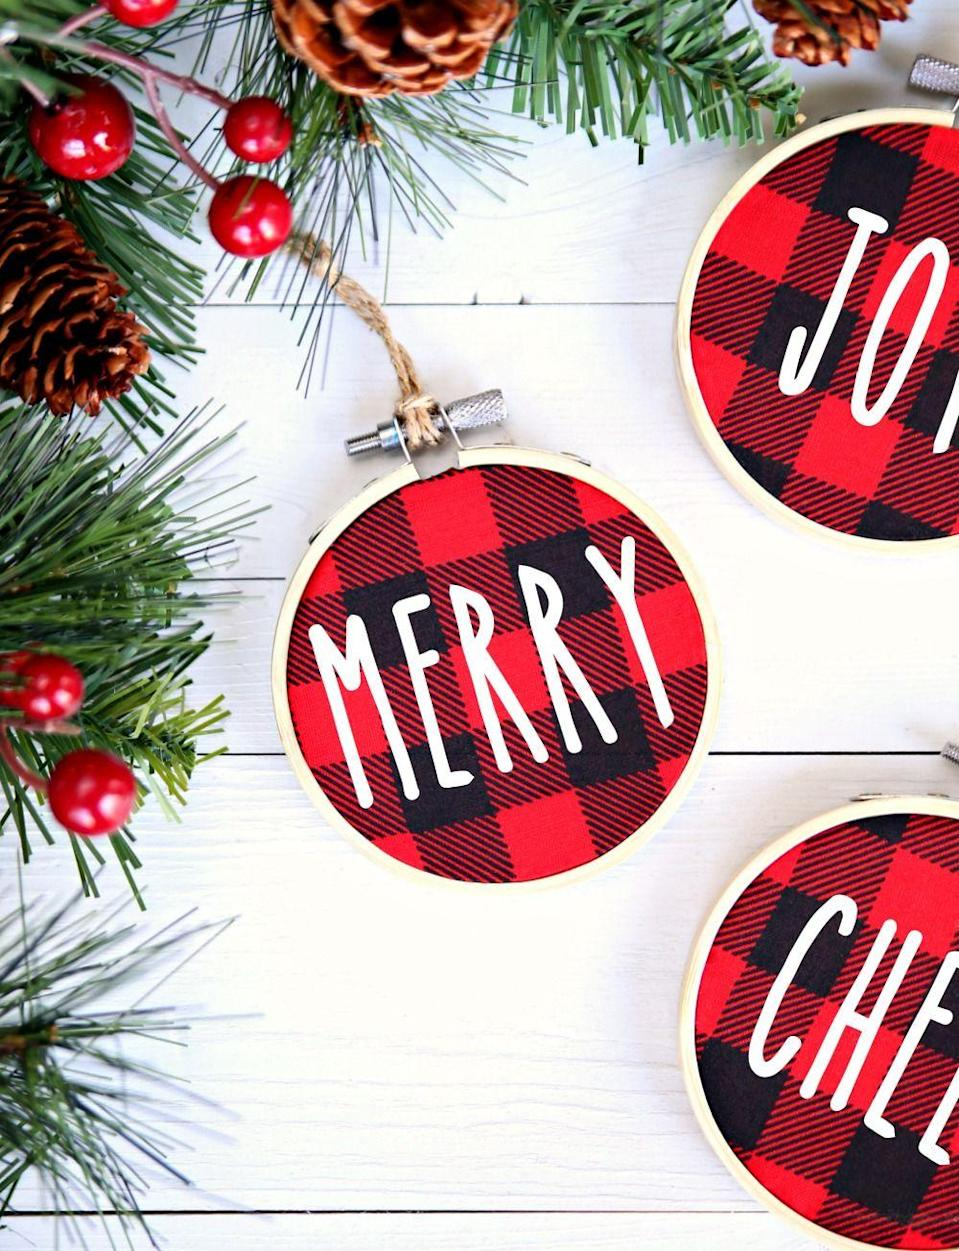 """<p>If perfection is your goal, use a cutting machine and iron-on vinyl to make these graphic ornaments. But if speed is your goal, letter stickers work, too. </p><p><em>Get the tutorial at <a href=""""https://www.happygoluckyblog.com/buffalo-check-christmas-ornaments/"""" rel=""""nofollow noopener"""" target=""""_blank"""" data-ylk=""""slk:Happy Go Lucky Blog"""" class=""""link rapid-noclick-resp"""">Happy Go Lucky Blog</a>. </em></p><p><a class=""""link rapid-noclick-resp"""" href=""""https://www.amazon.com/Cricut-Joy-Machine-Portable-Personalized/dp/B084LMTR98?tag=syn-yahoo-20&ascsubtag=%5Bartid%7C10072.g.34443405%5Bsrc%7Cyahoo-us"""" rel=""""nofollow noopener"""" target=""""_blank"""" data-ylk=""""slk:SHOP CRICUT"""">SHOP CRICUT</a></p>"""